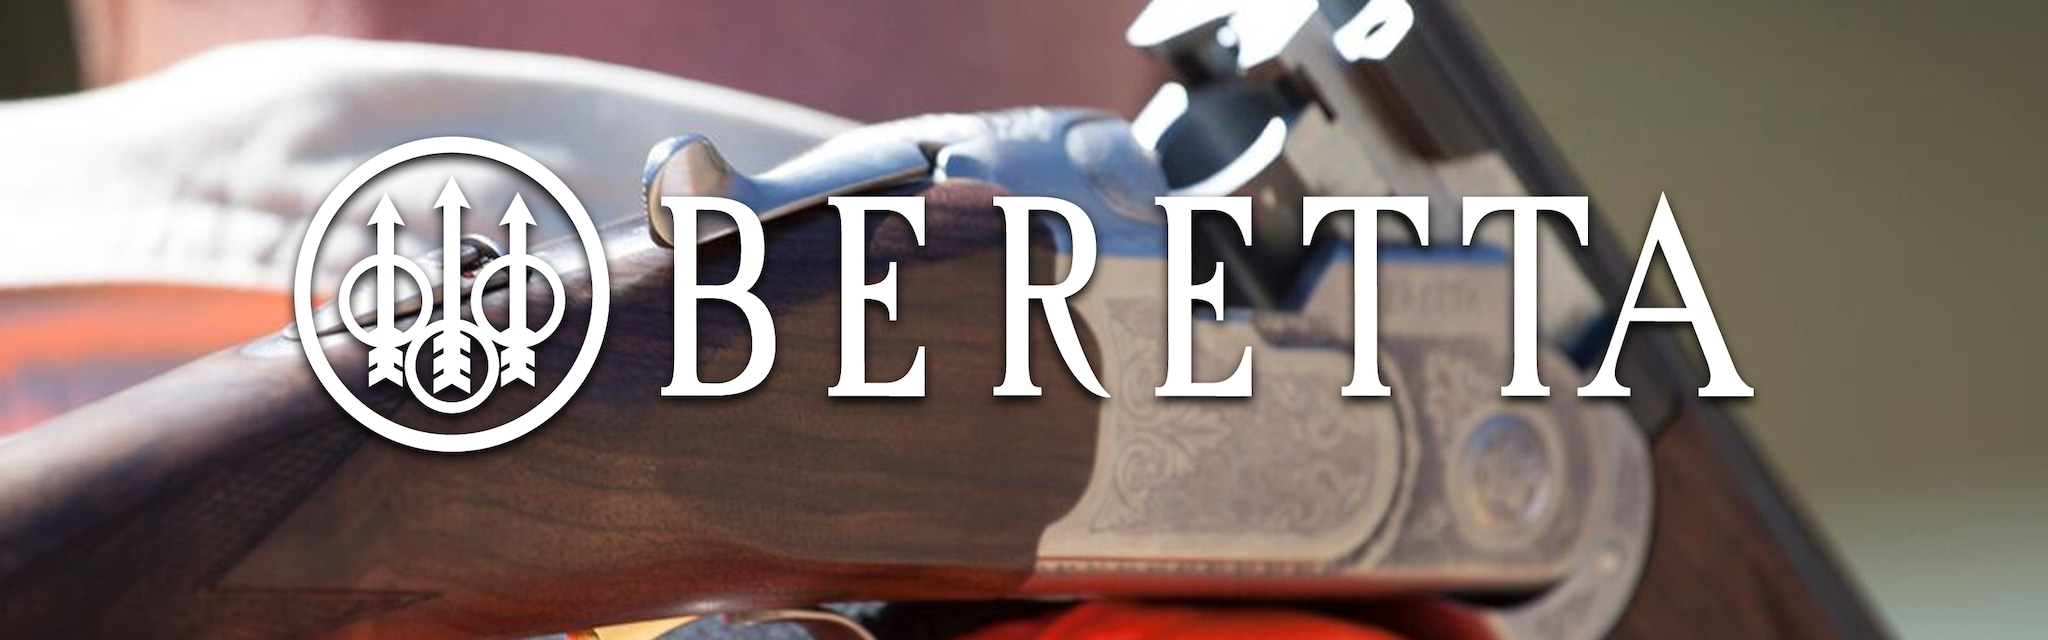 Beretta Header Image over under shotgun